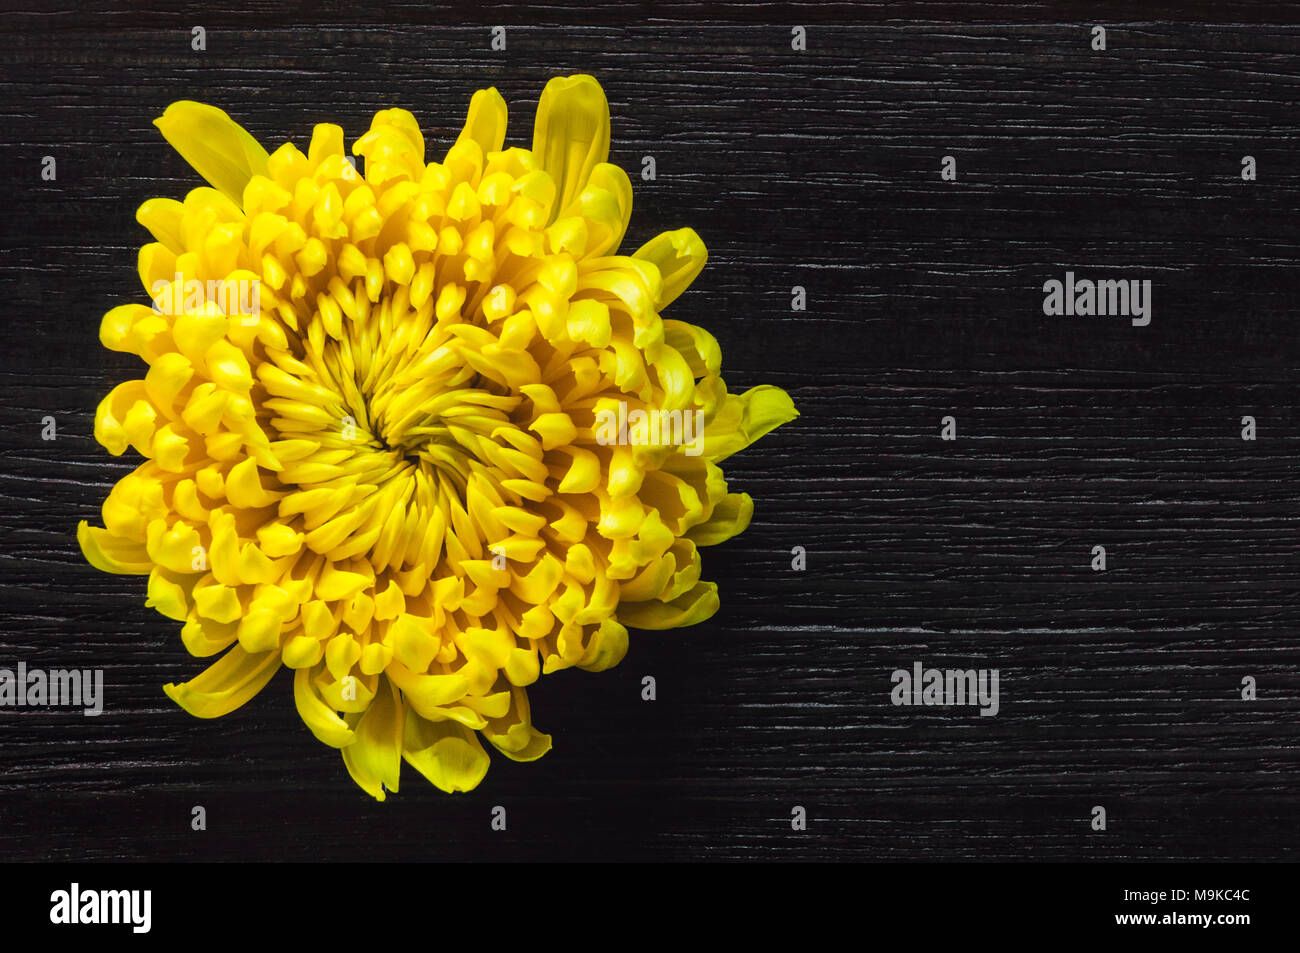 Yellow Chrysanthemum on Dark Table with Space for Copy - Stock Image